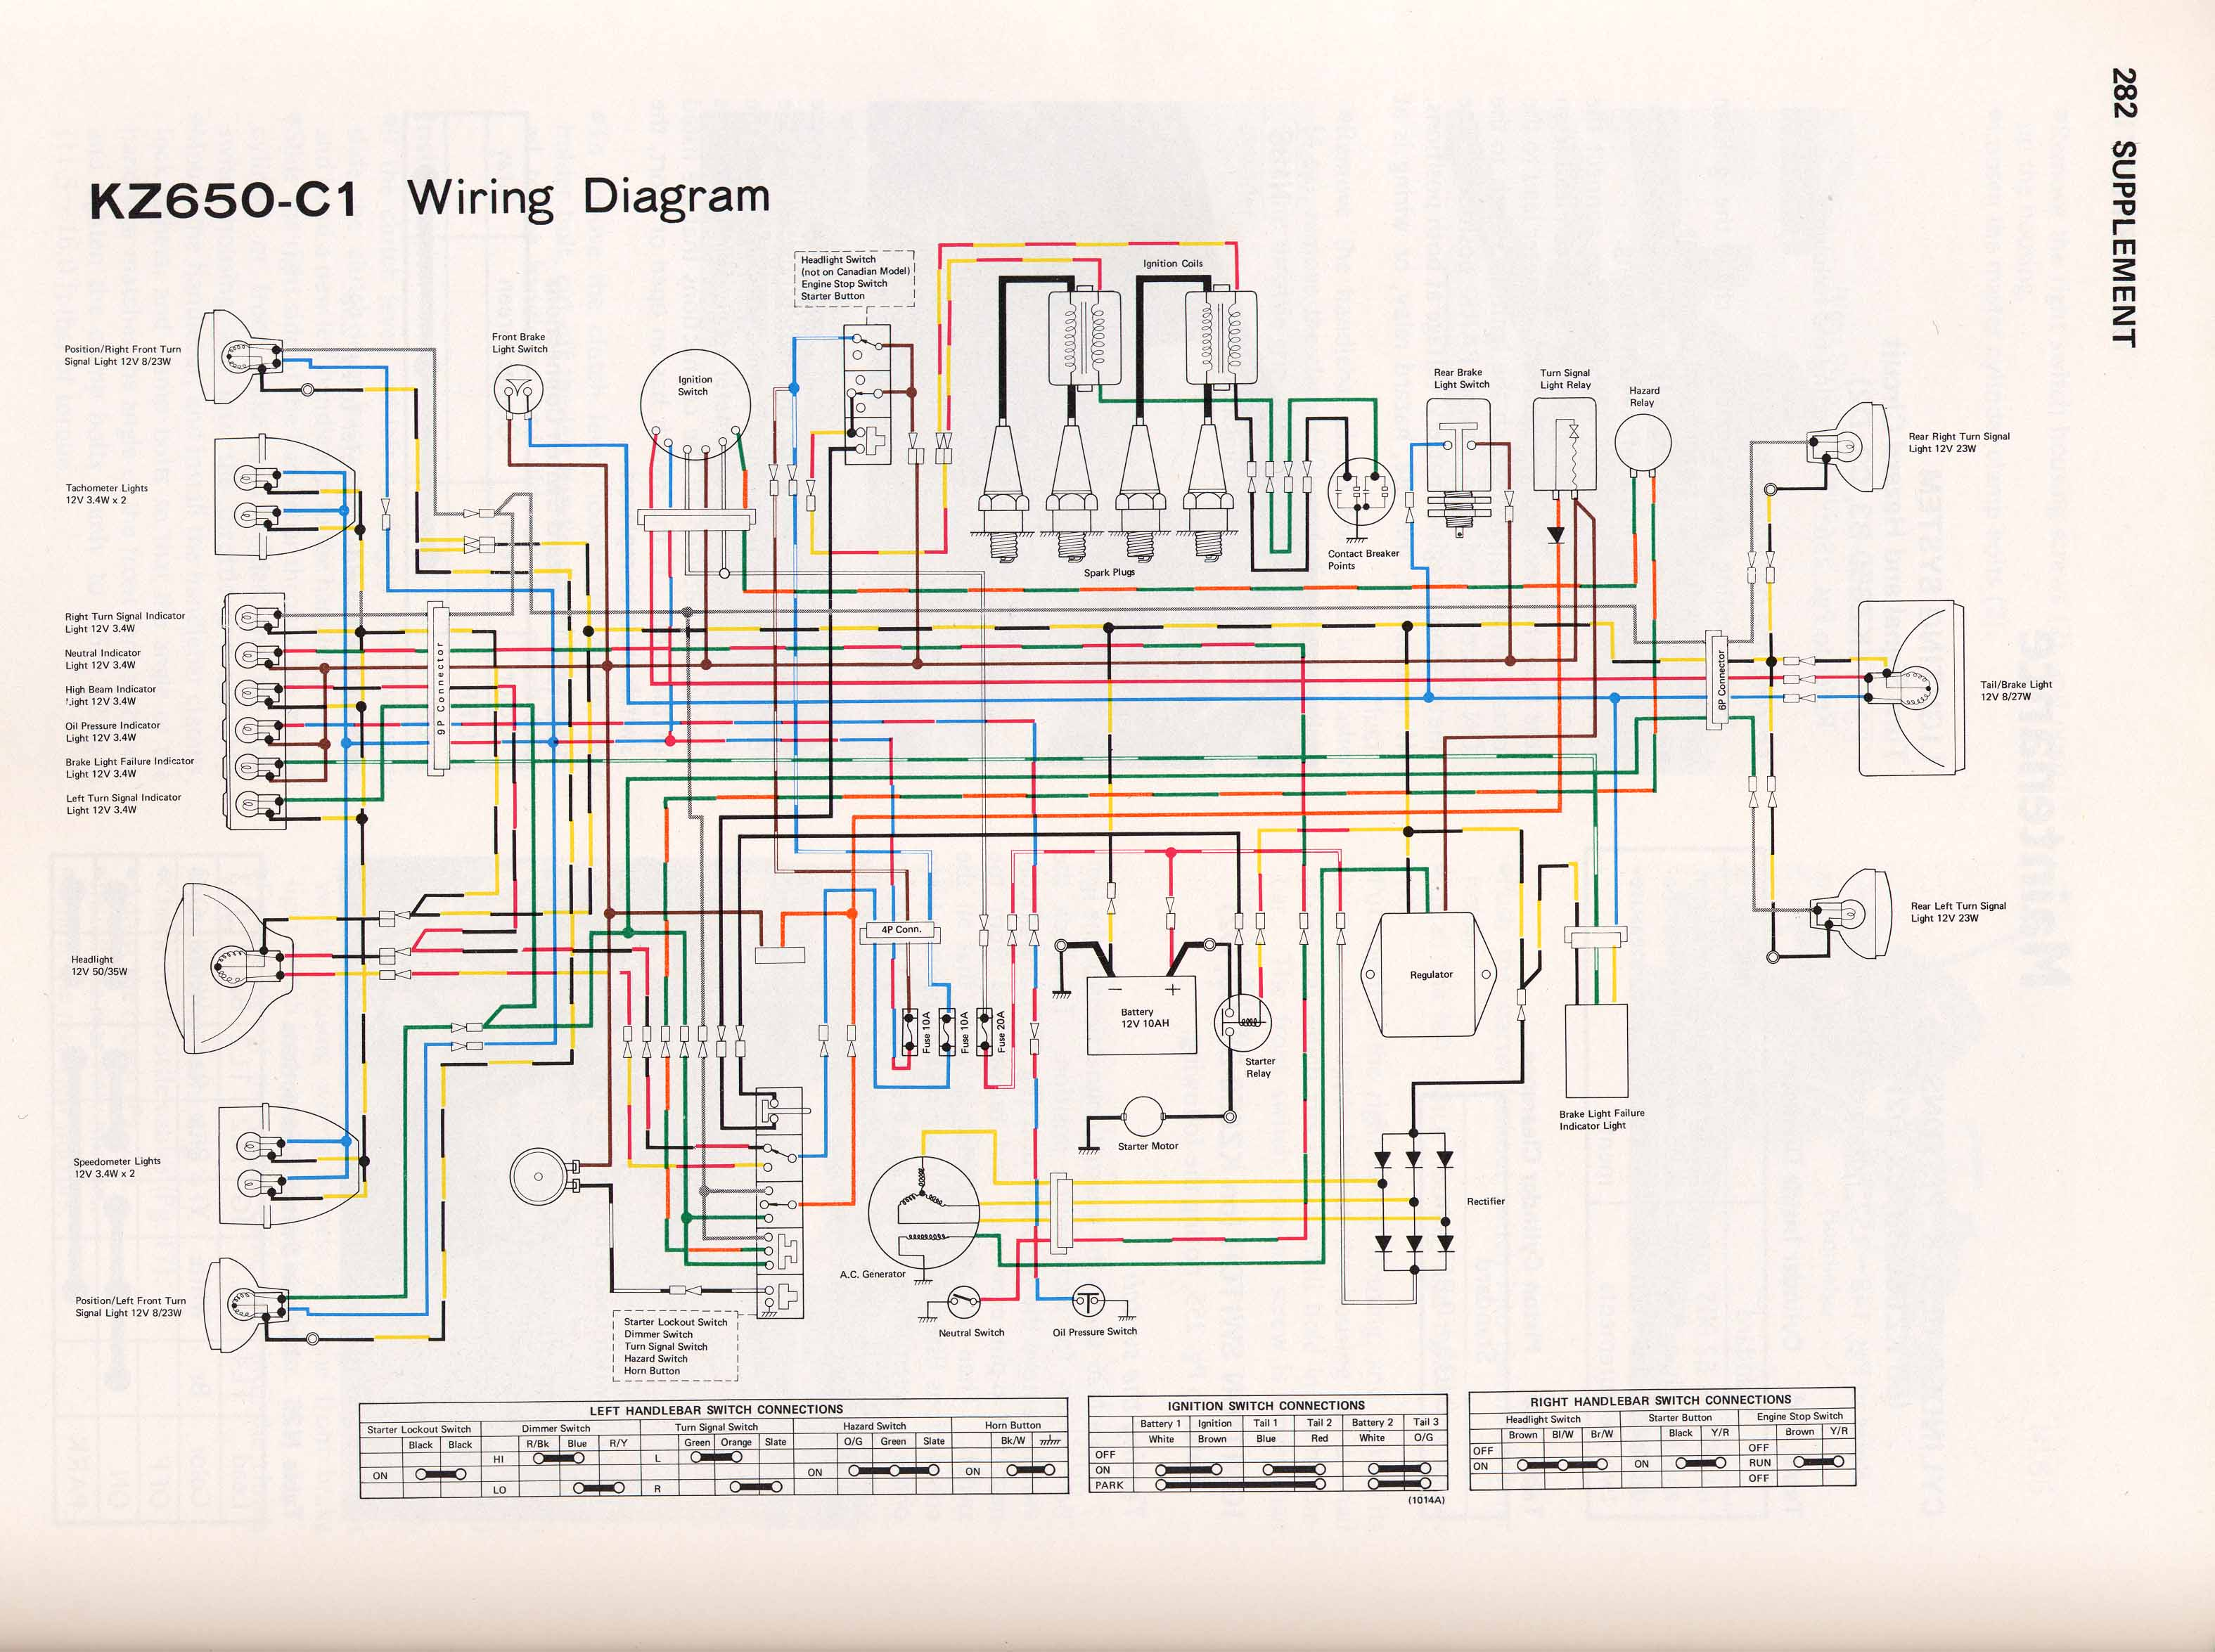 KZ650 C1 kz650 info wiring diagrams kawasaki z750 wiring diagram at creativeand.co